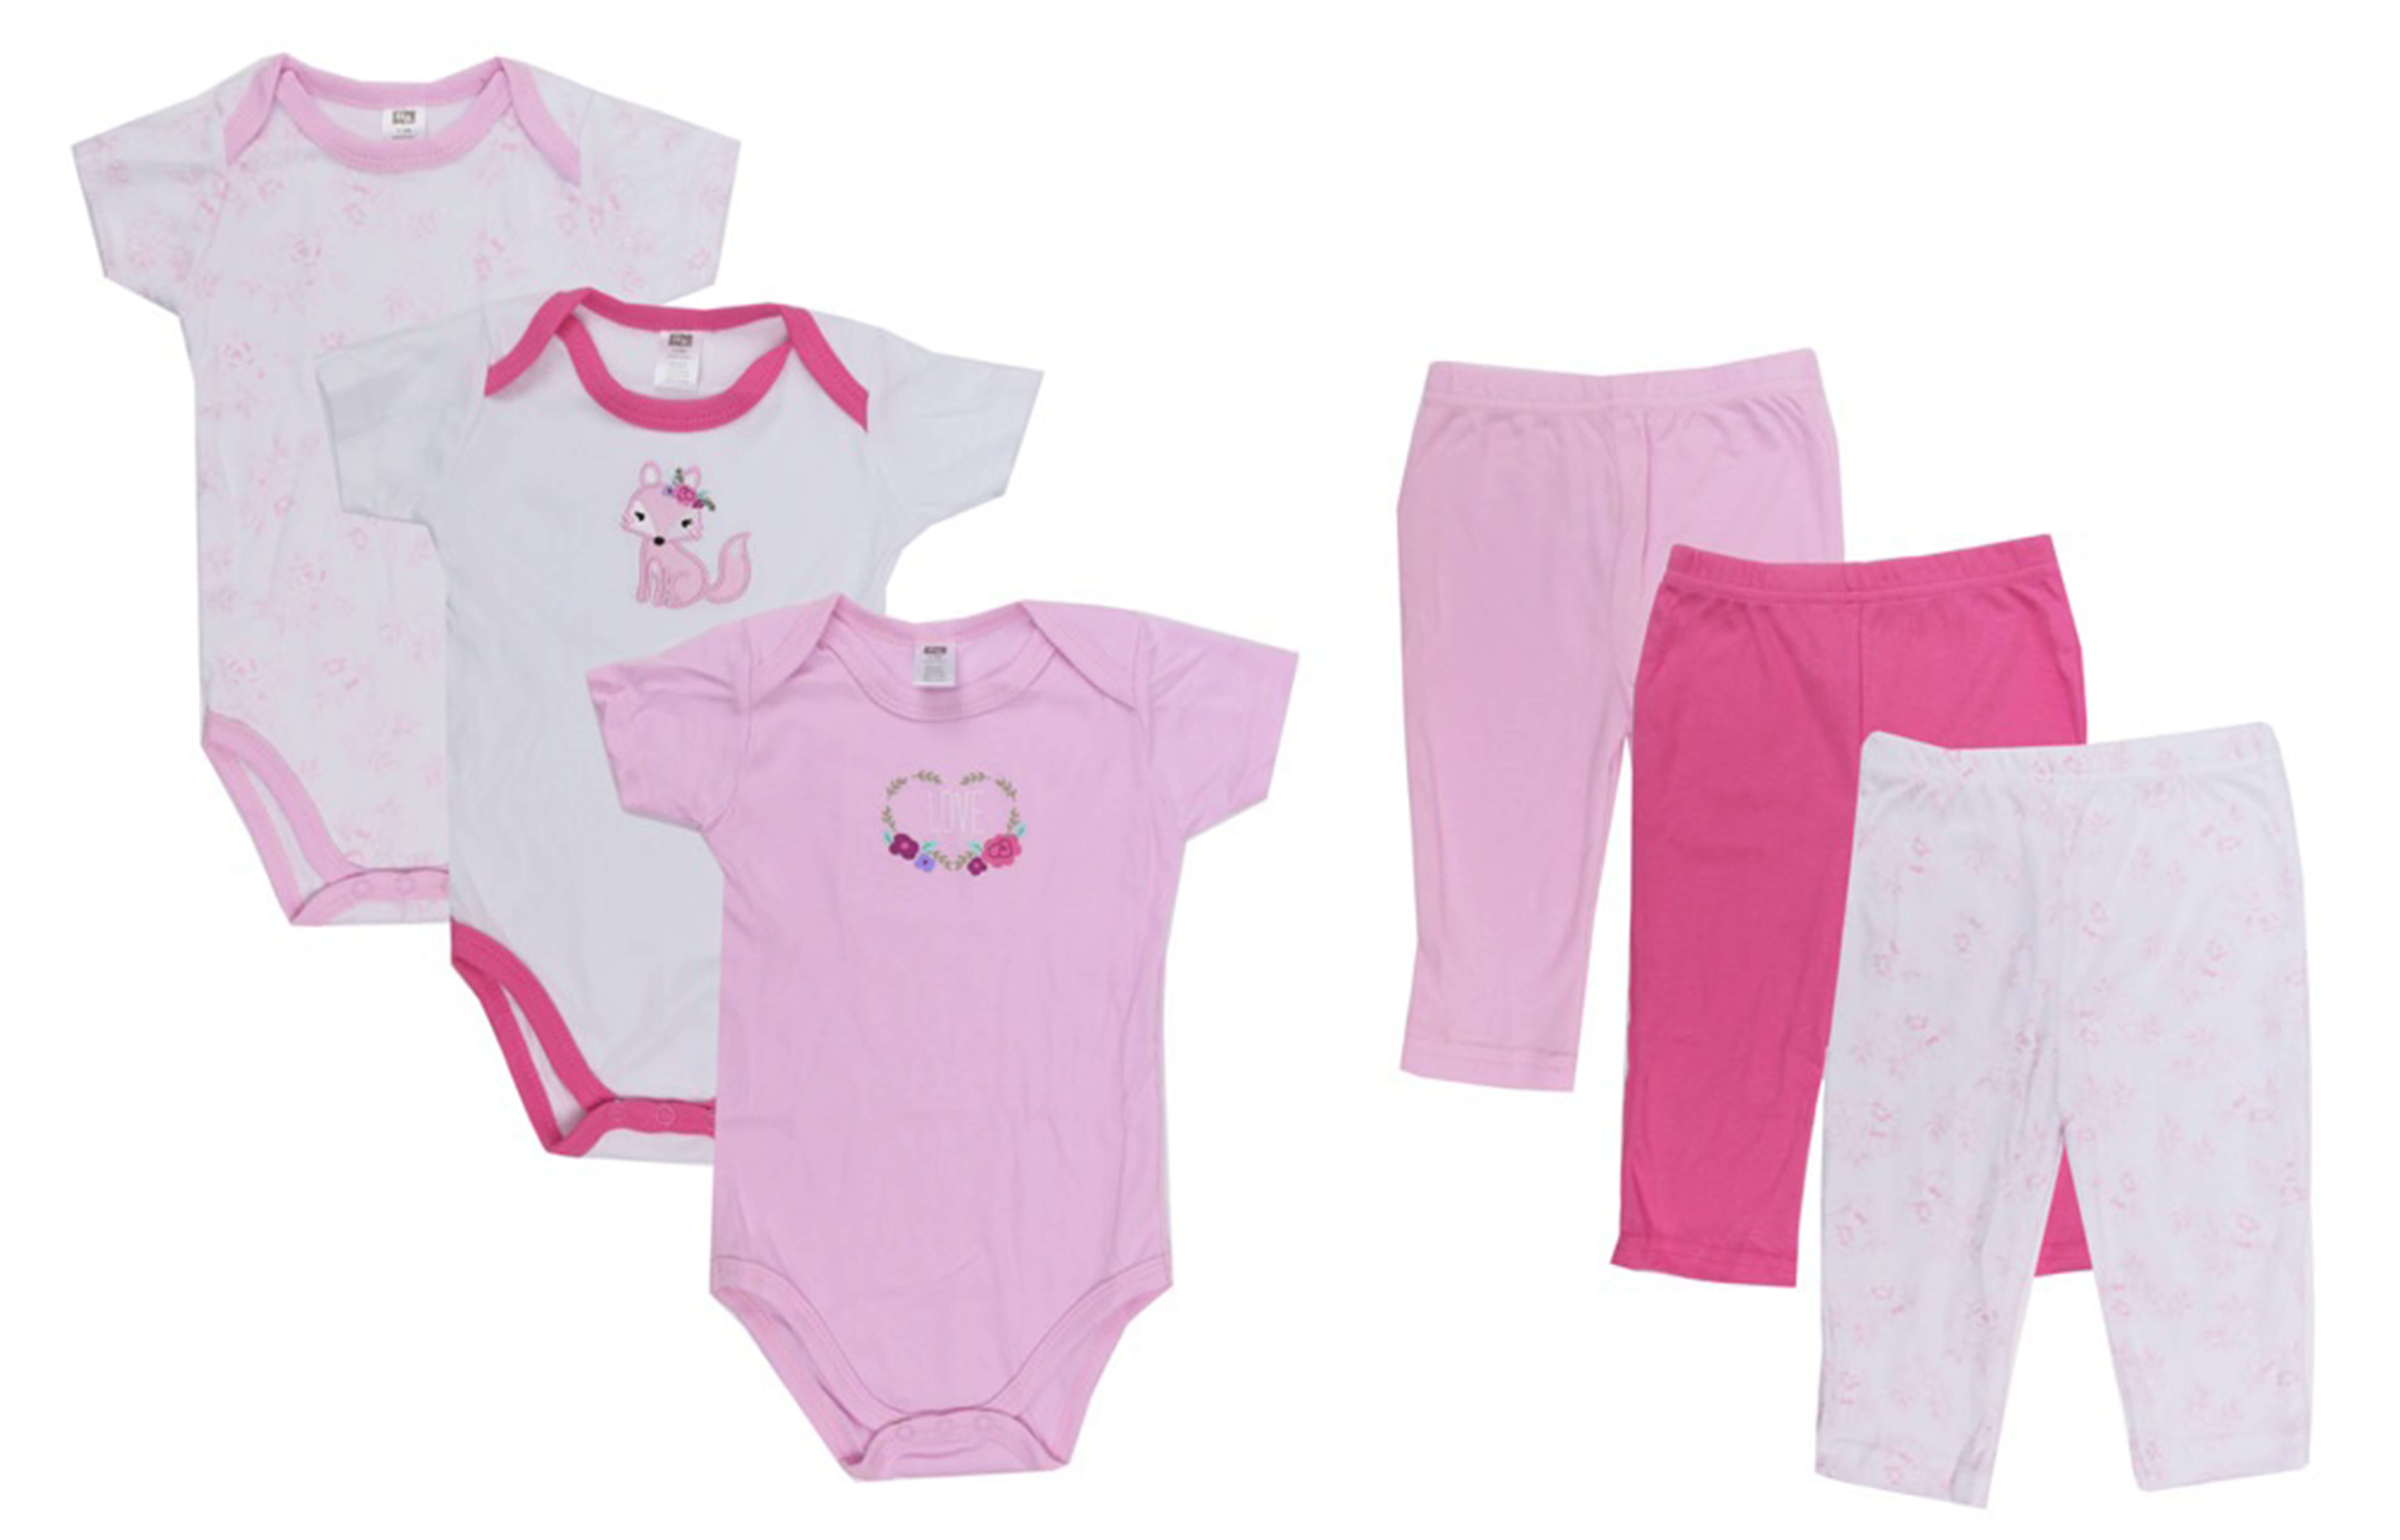 Baby Grow w Me Baby Clothing Gift Set Girly Fox